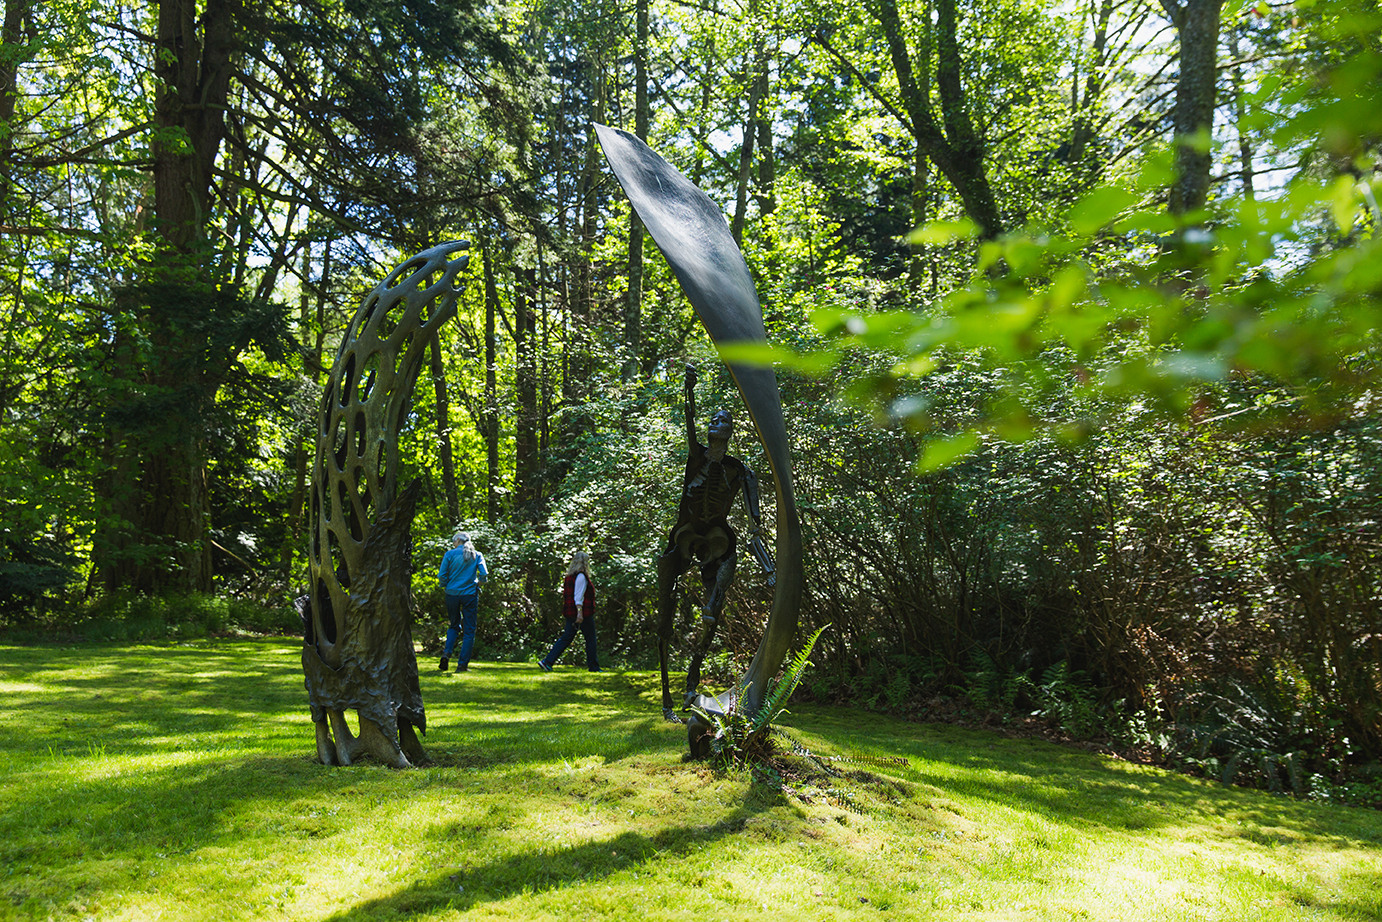 two people walk among two soaring sculptures on a lawn surrounded by tall trees